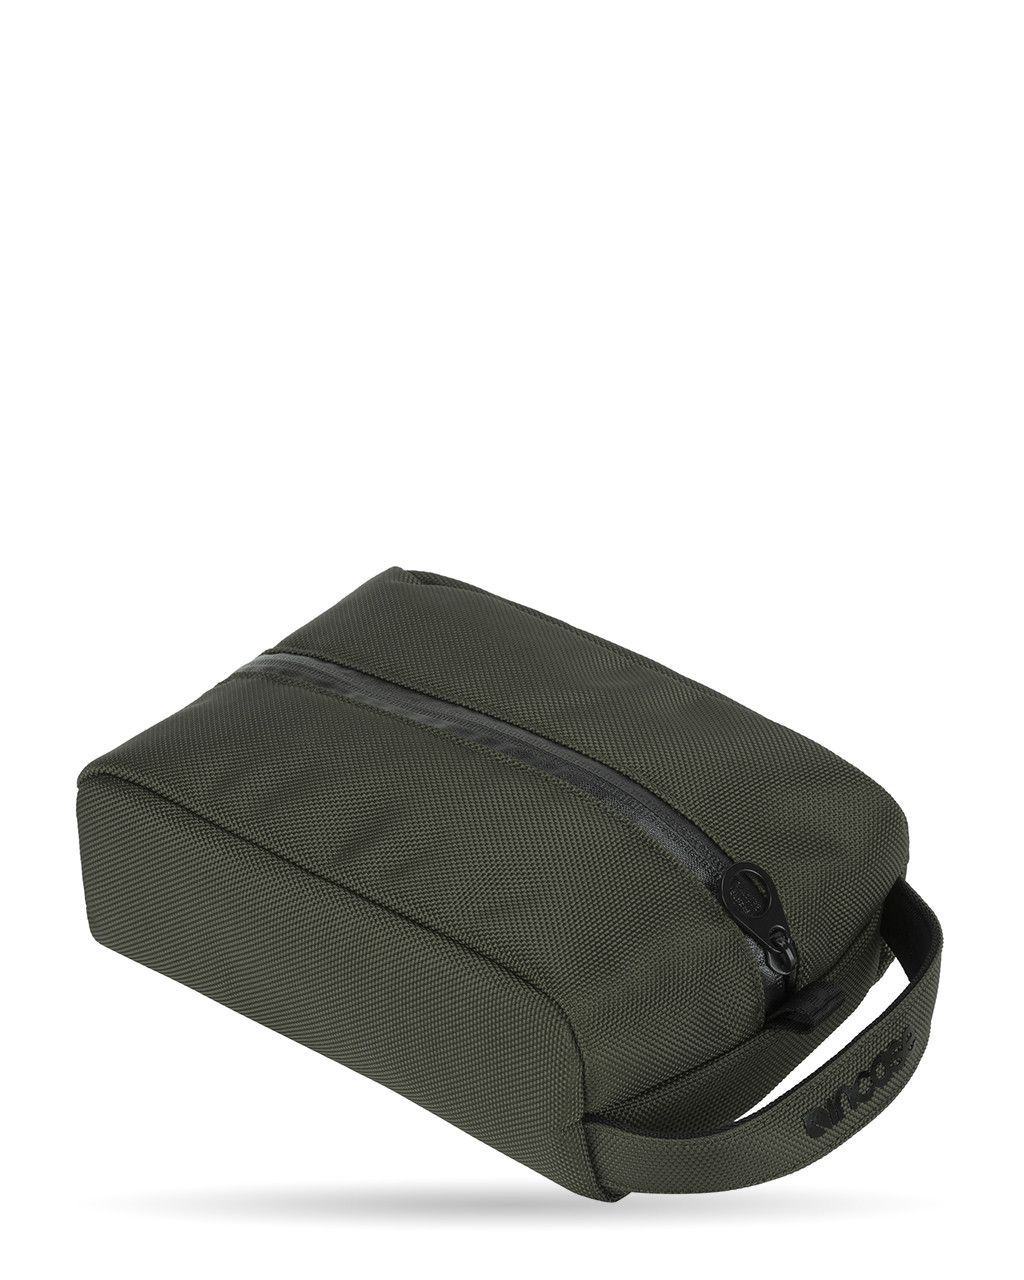 Incase Travel Simple Dopp Kit